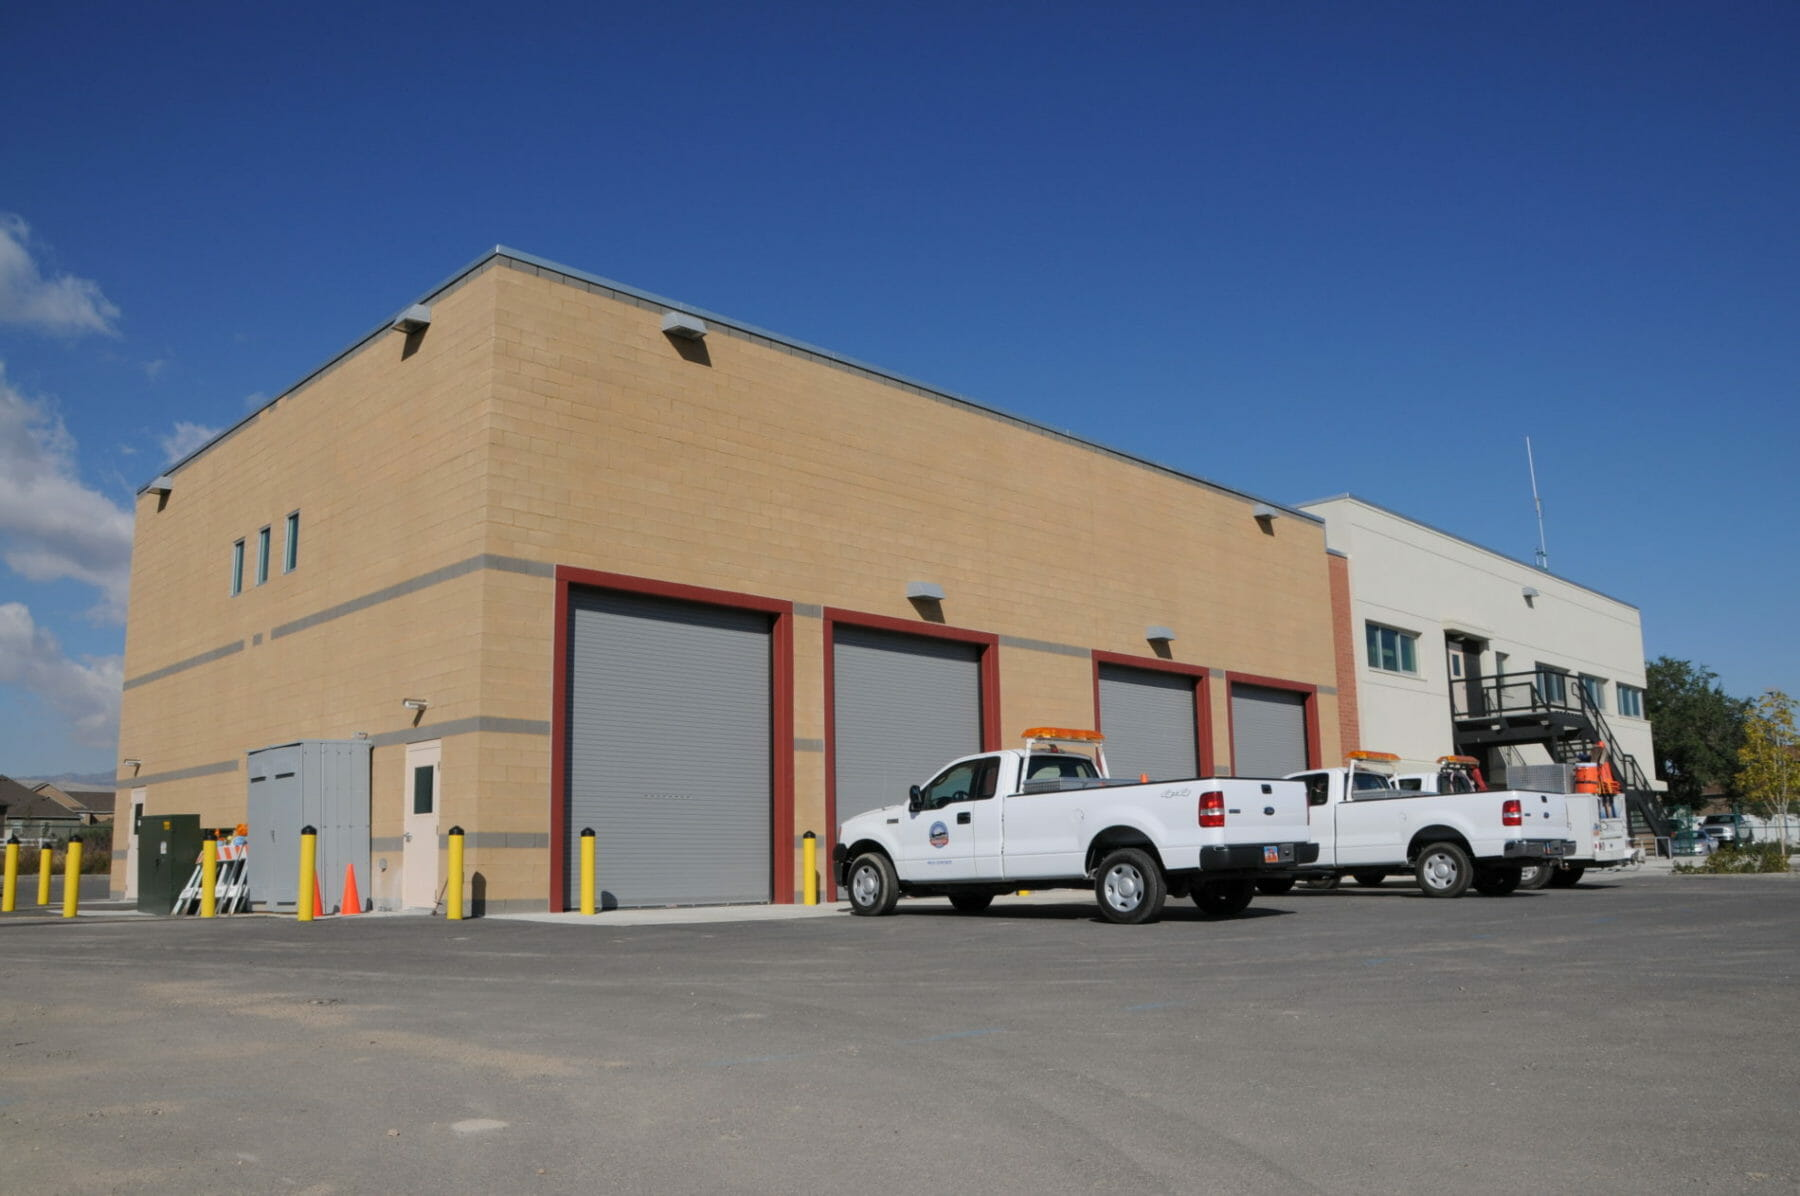 Entrance of Riverton Public Works - Architecture designs by Think